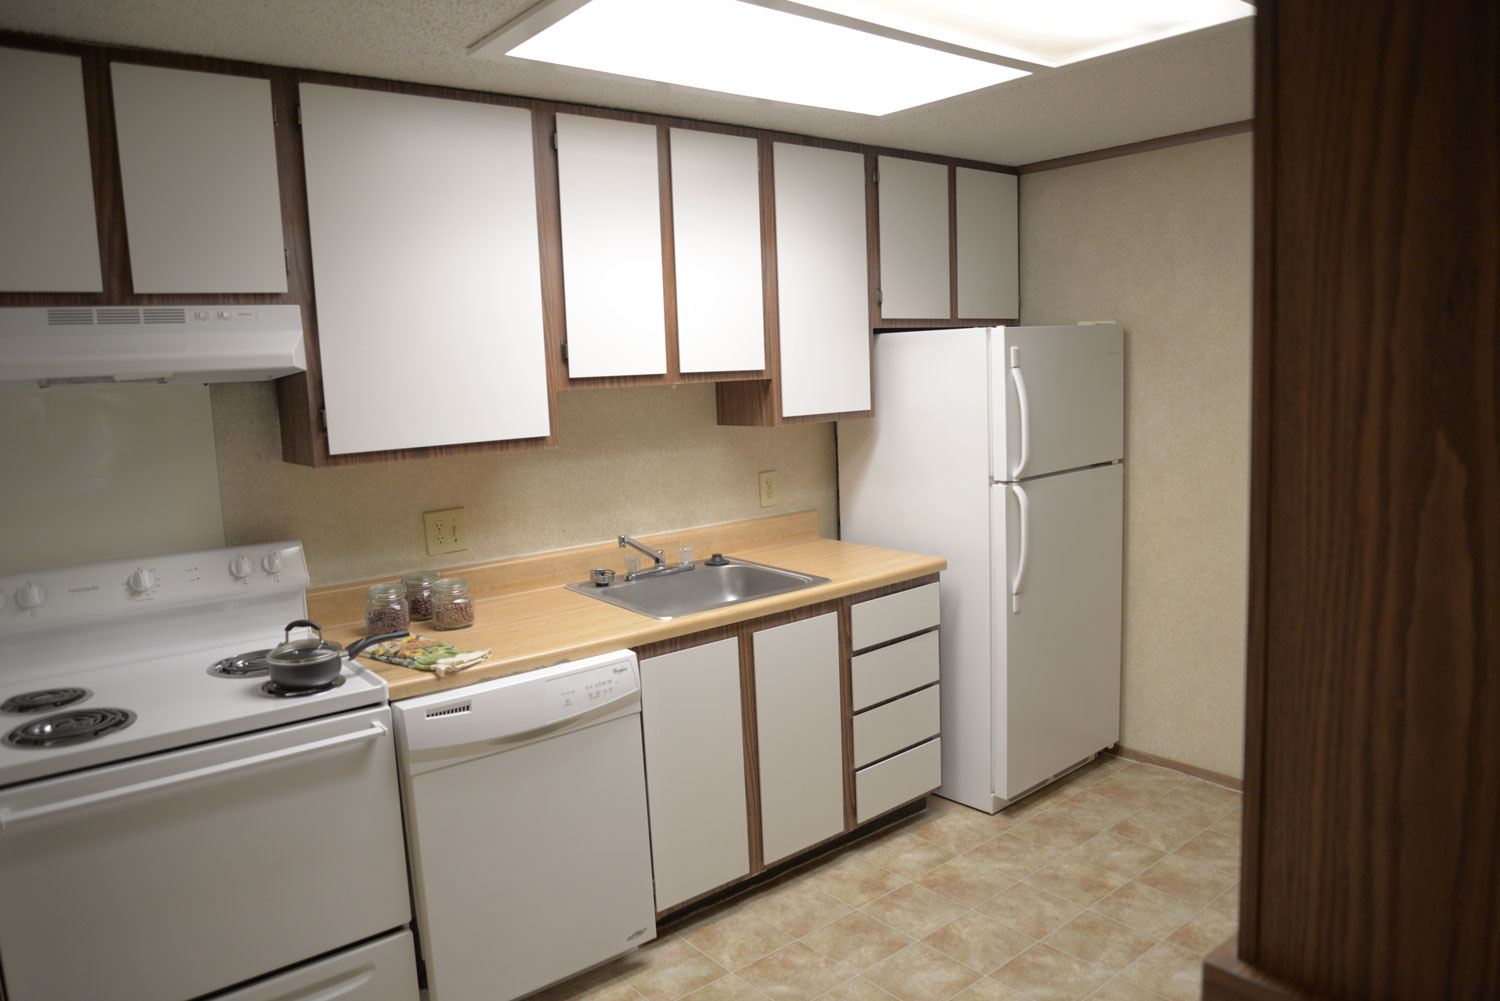 2 bedroom apartments in richmond va giveaway party - 2 bedroom apartments richmond va ...